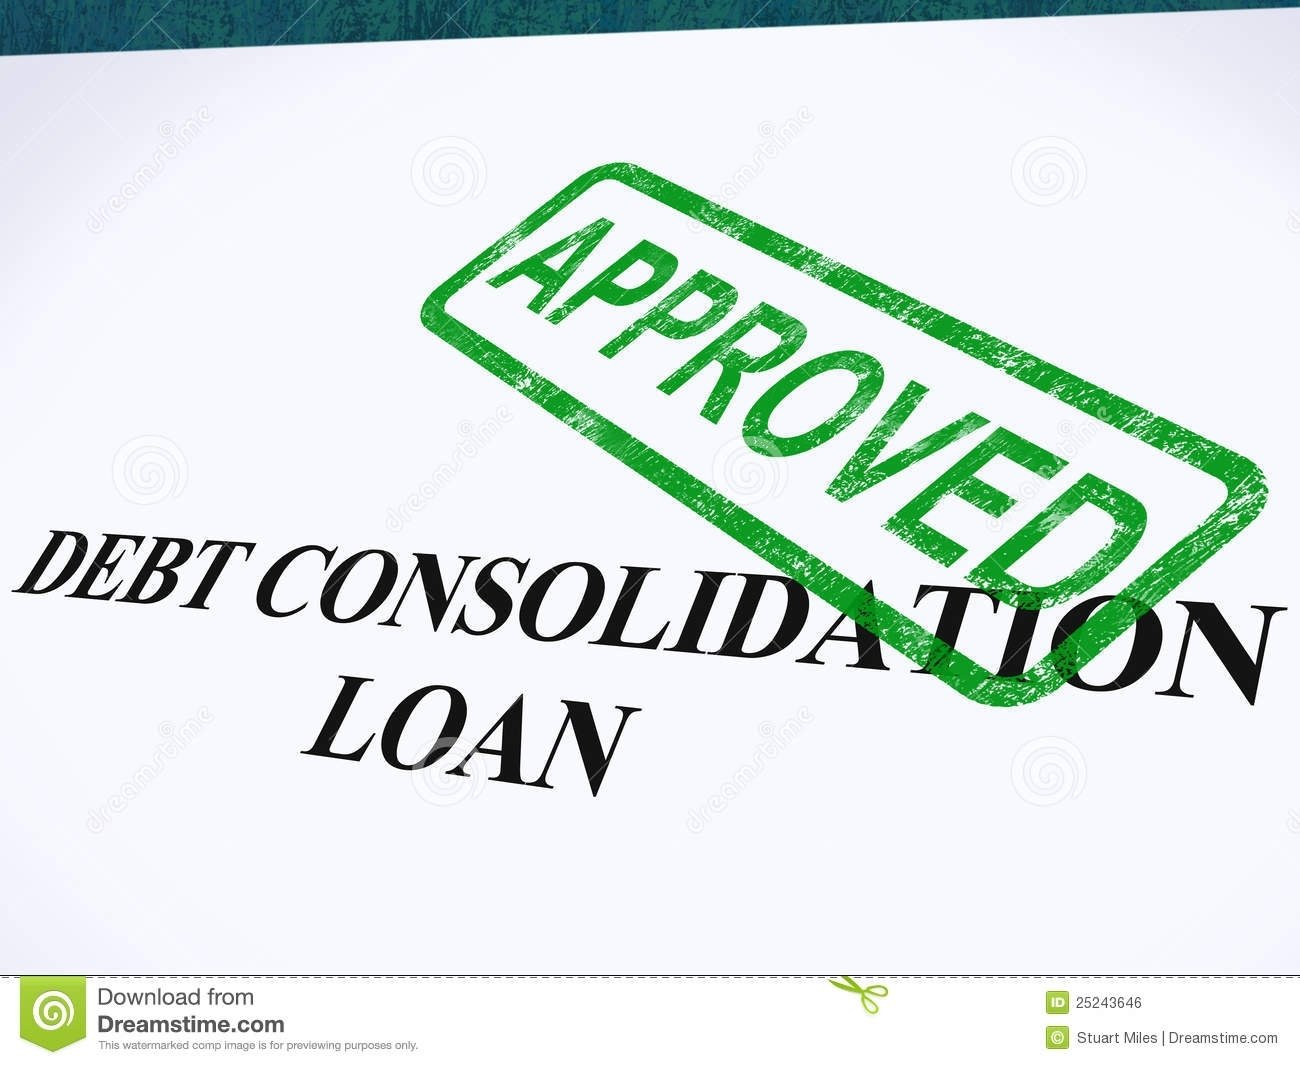 10 Fashionable Are Debt Consolidation Loans A Good Idea debt consolidation loan approved stock photo image of borrower 1